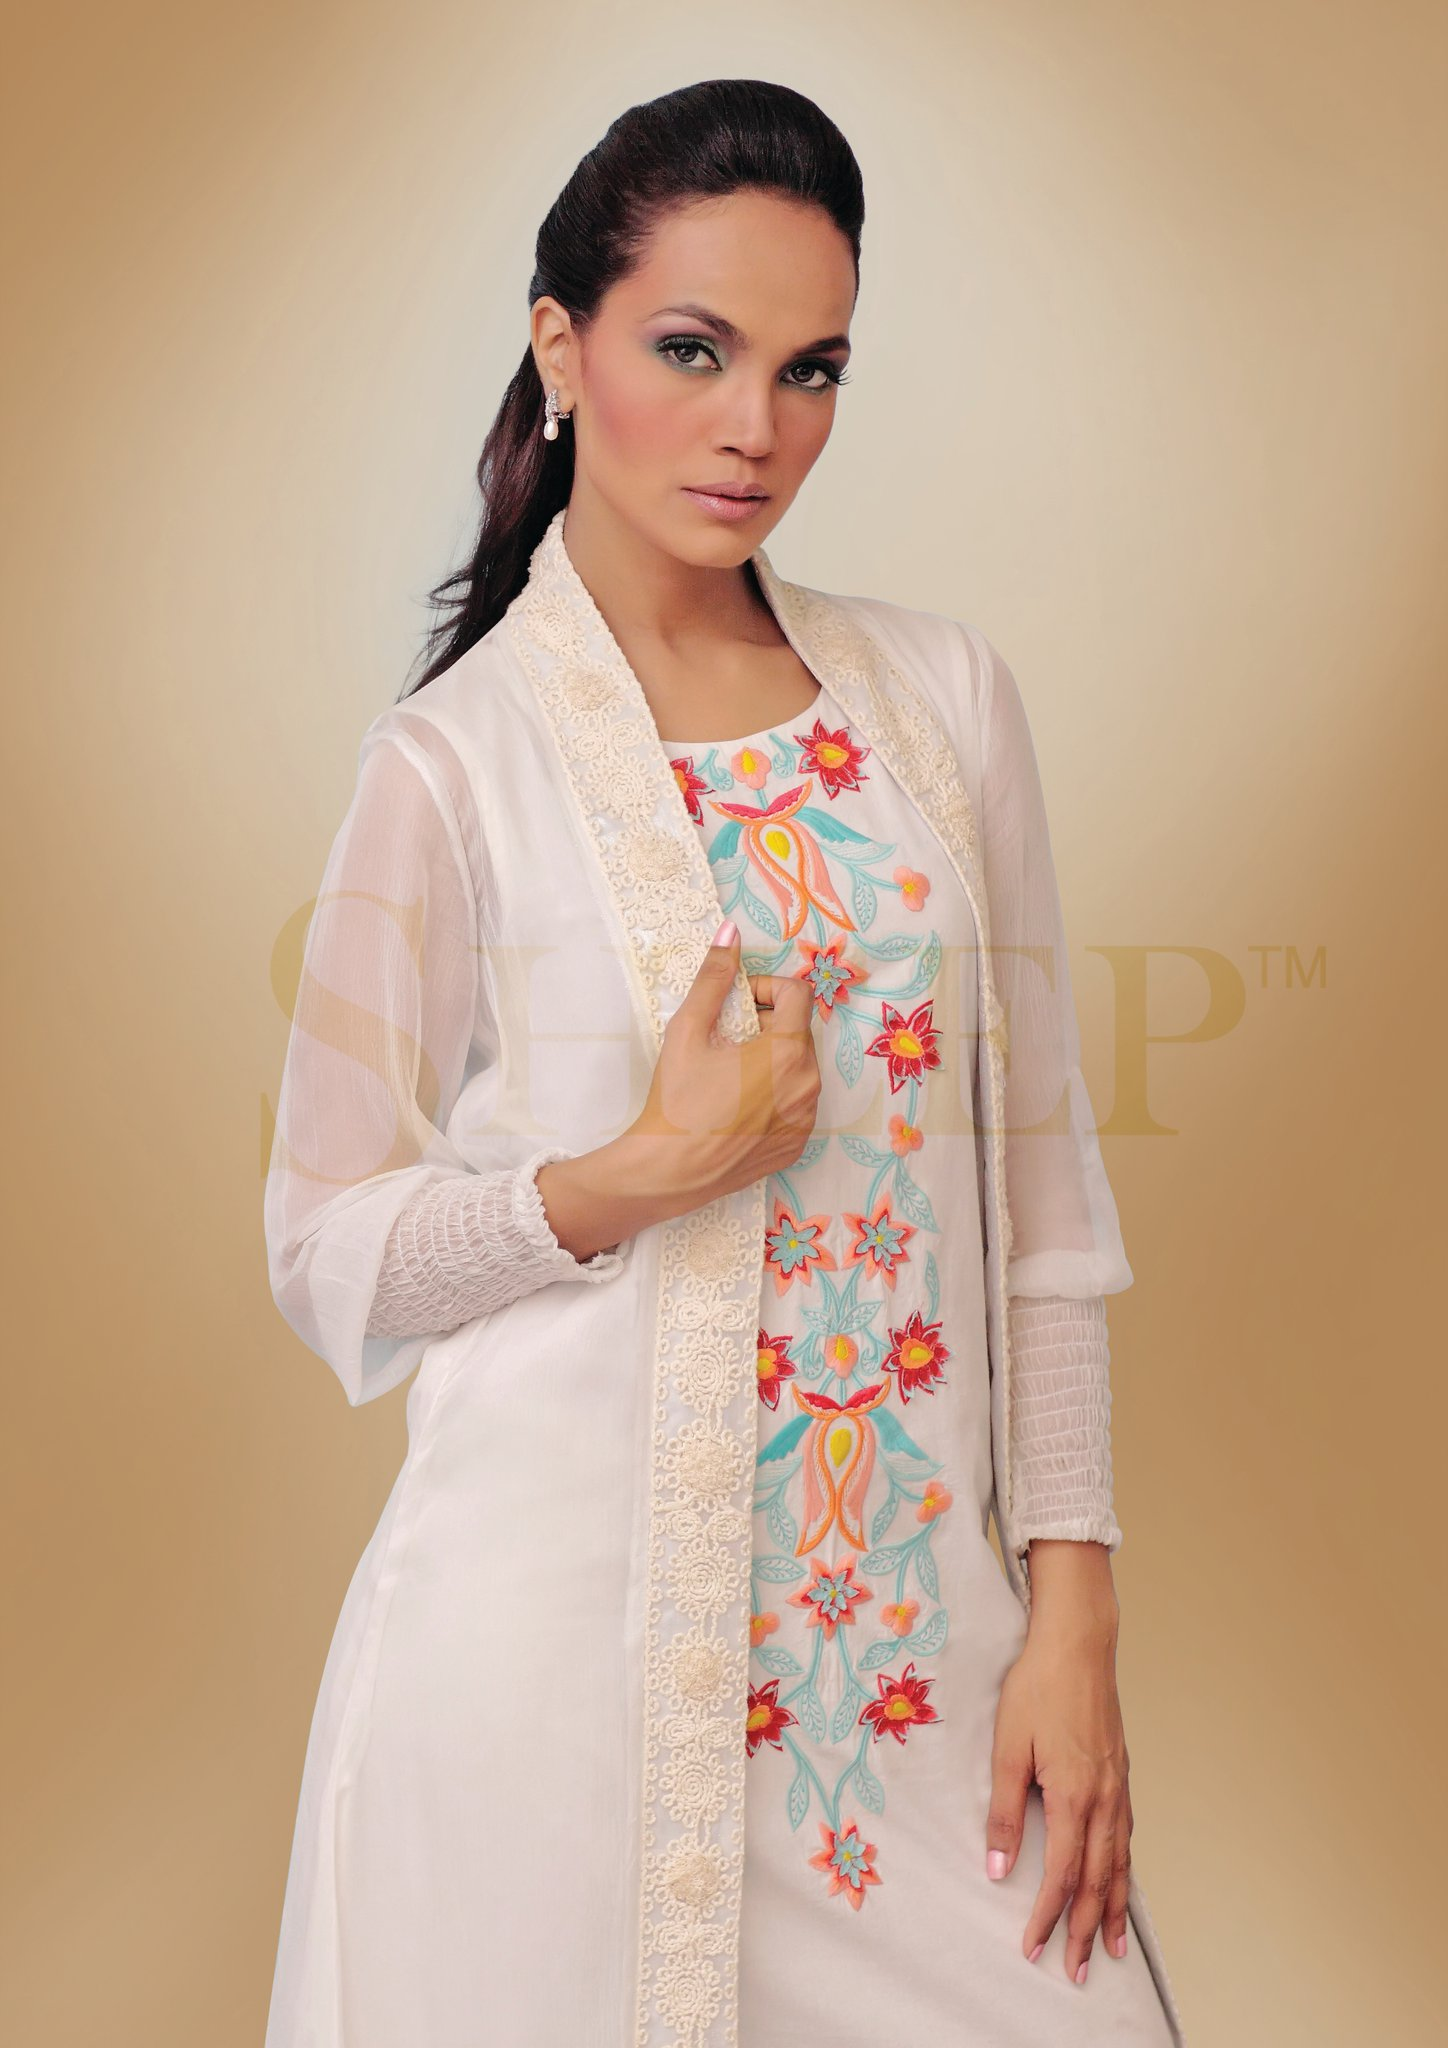 Ladies White Casual Wear Dresses Crayon